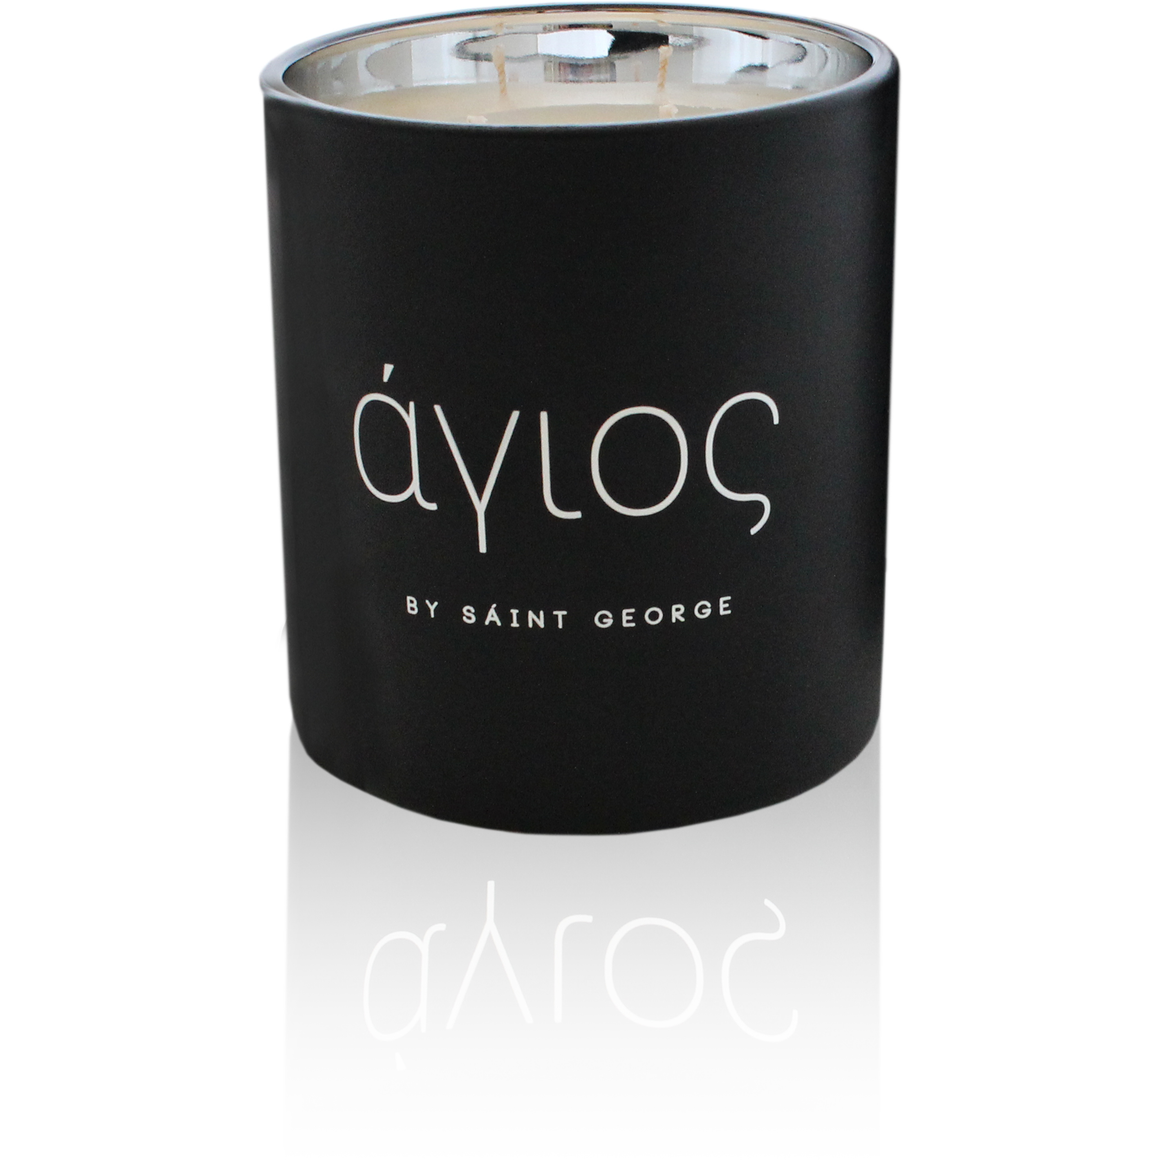 Ayios by Saint George Candle (4501226258486)